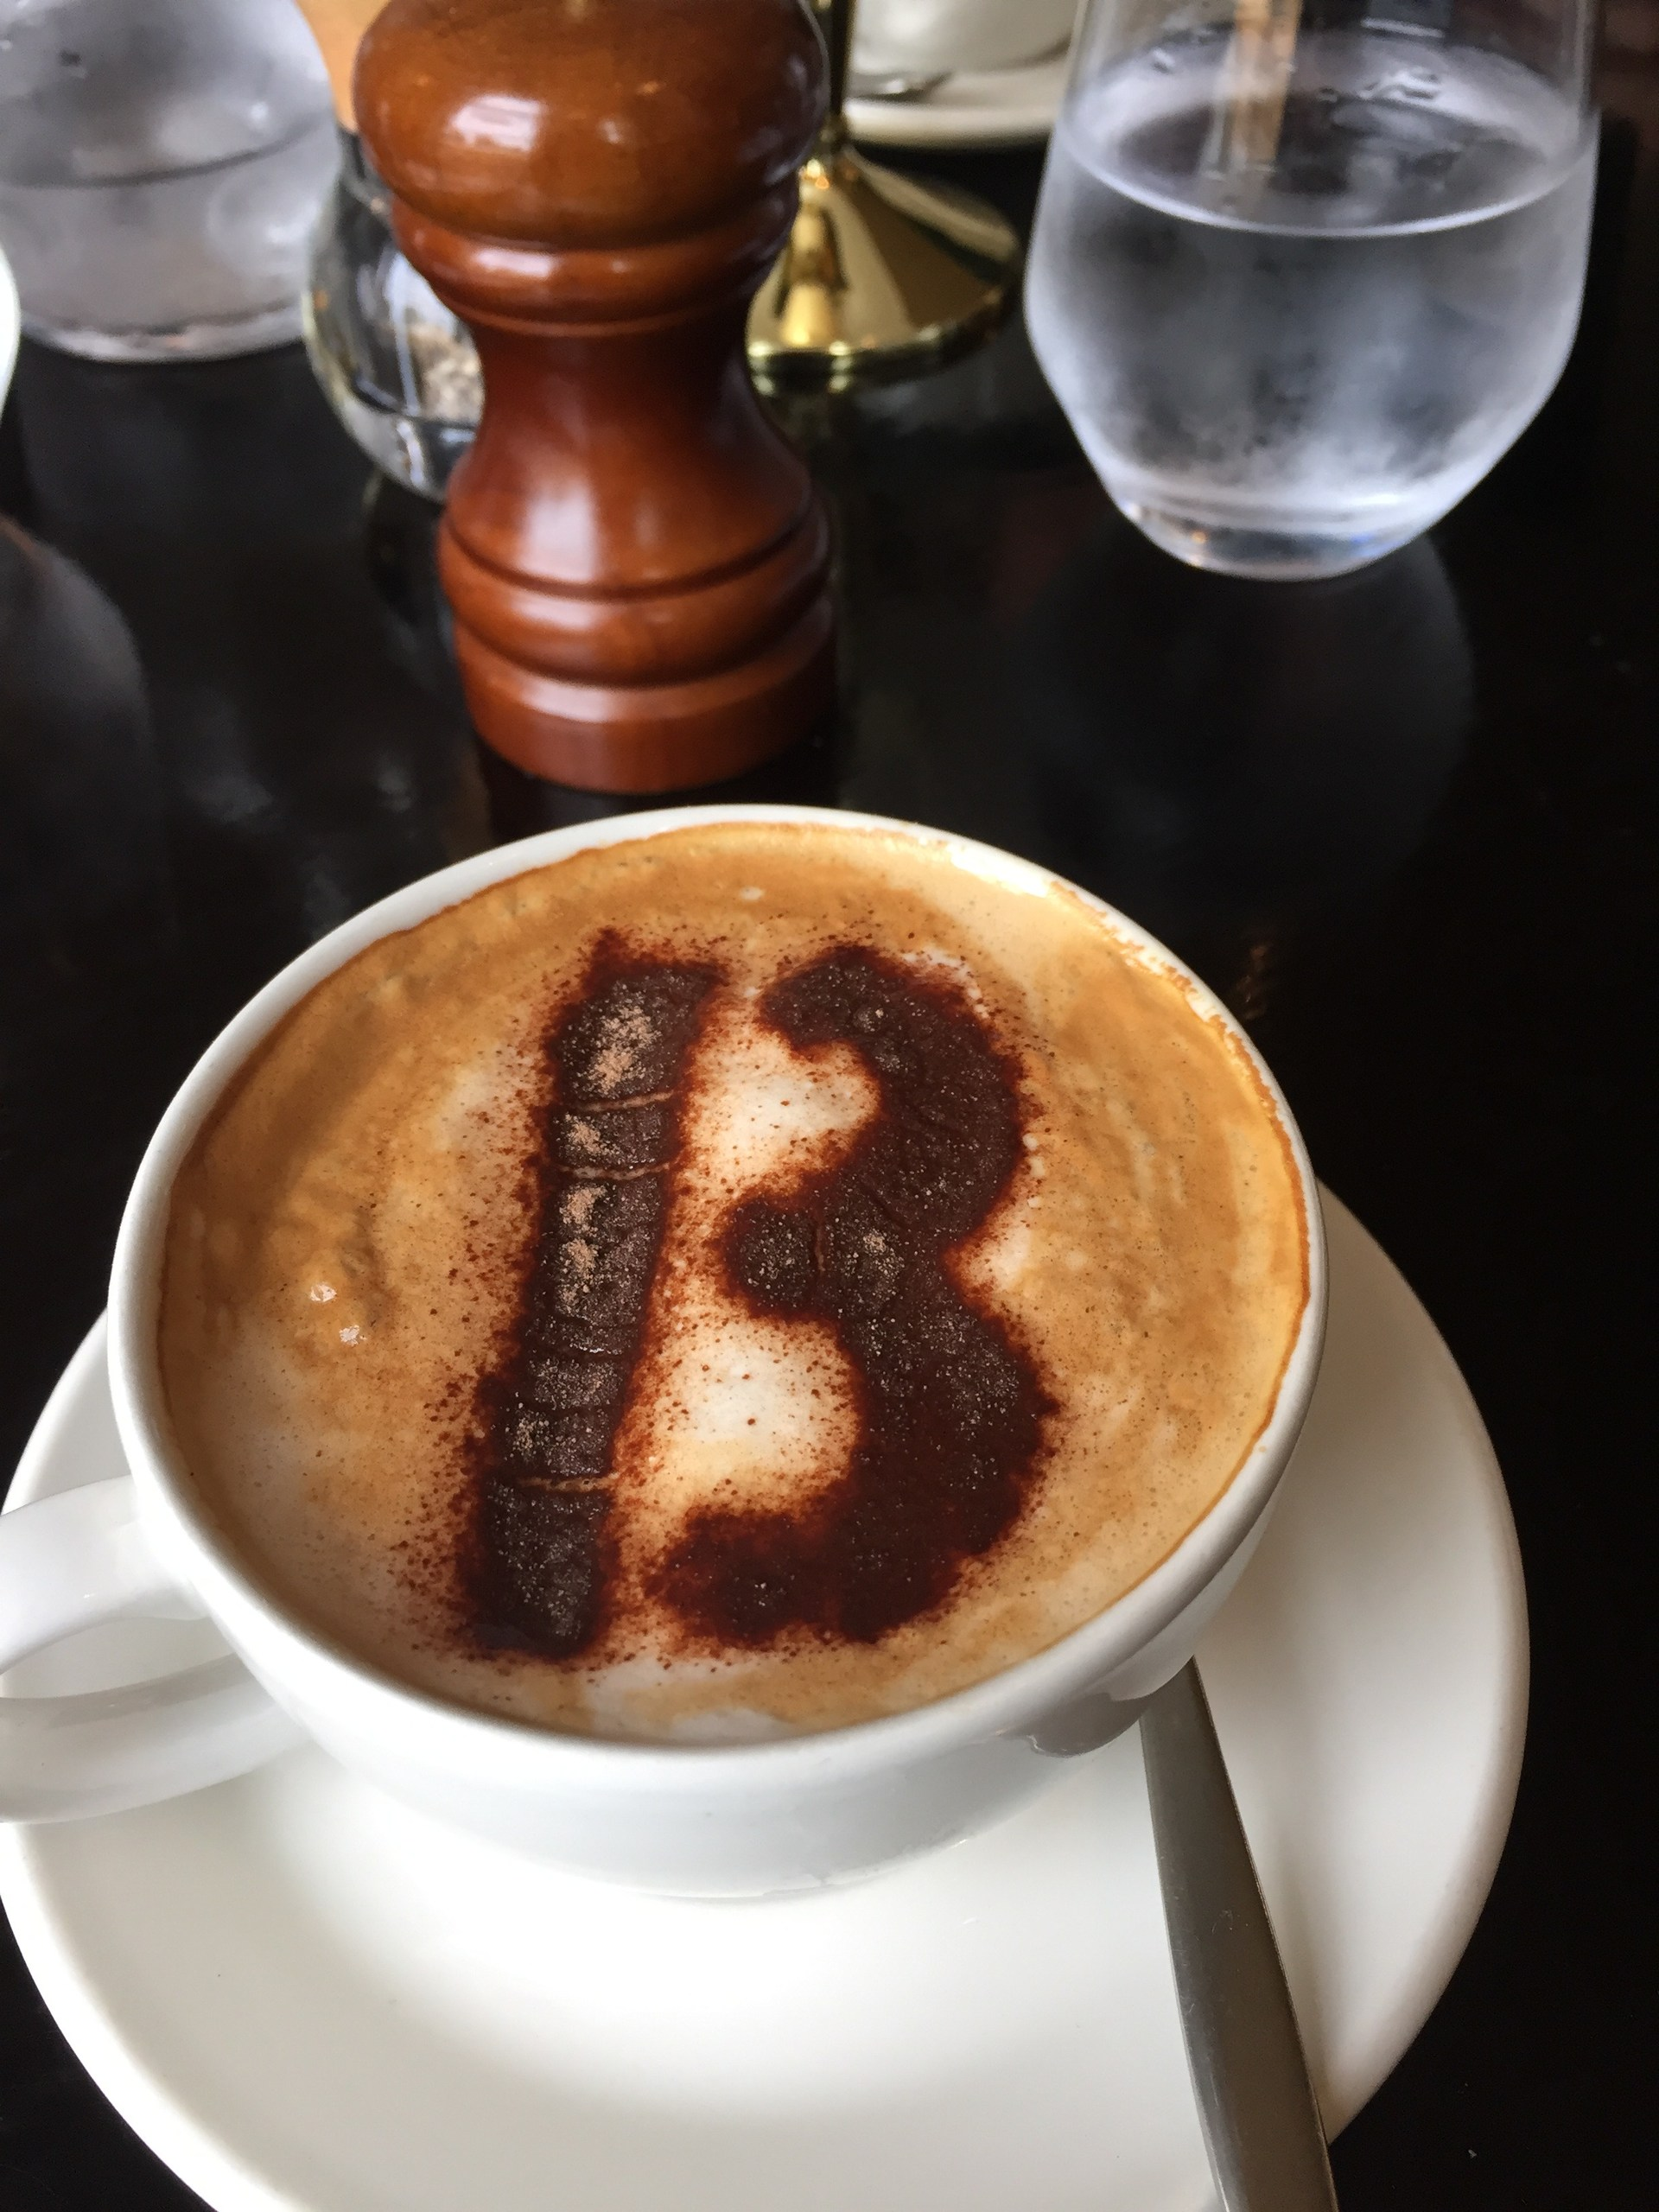 Image of coffee in a cup